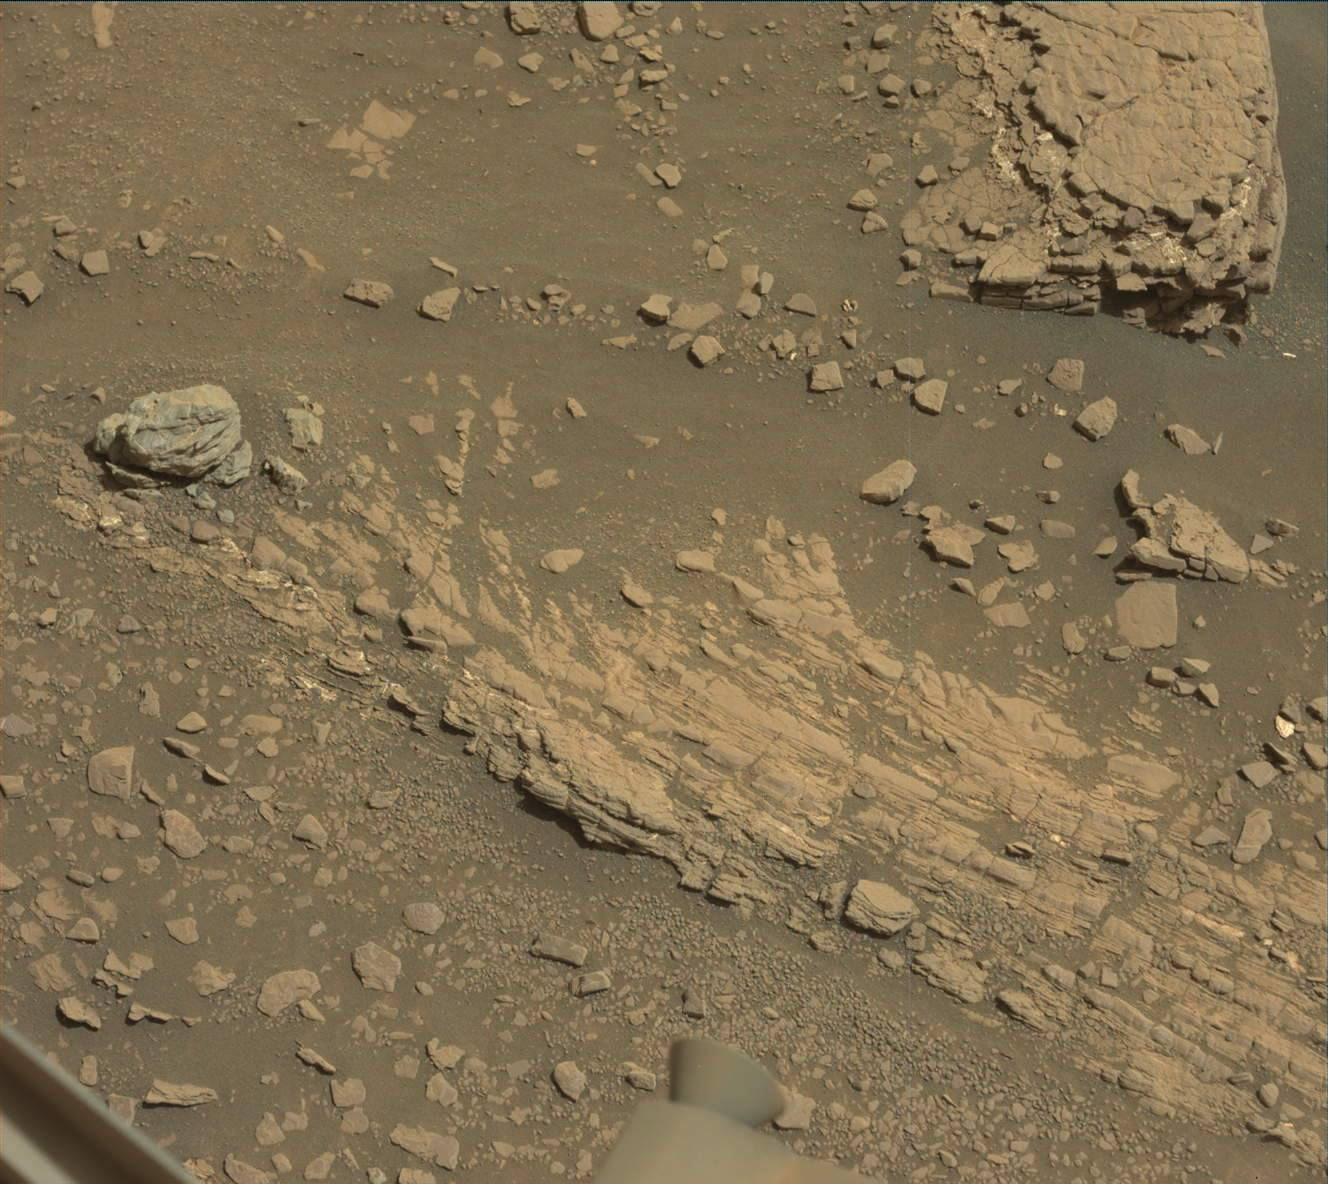 Mastcam image of the surface layering taken on Sol 2425.